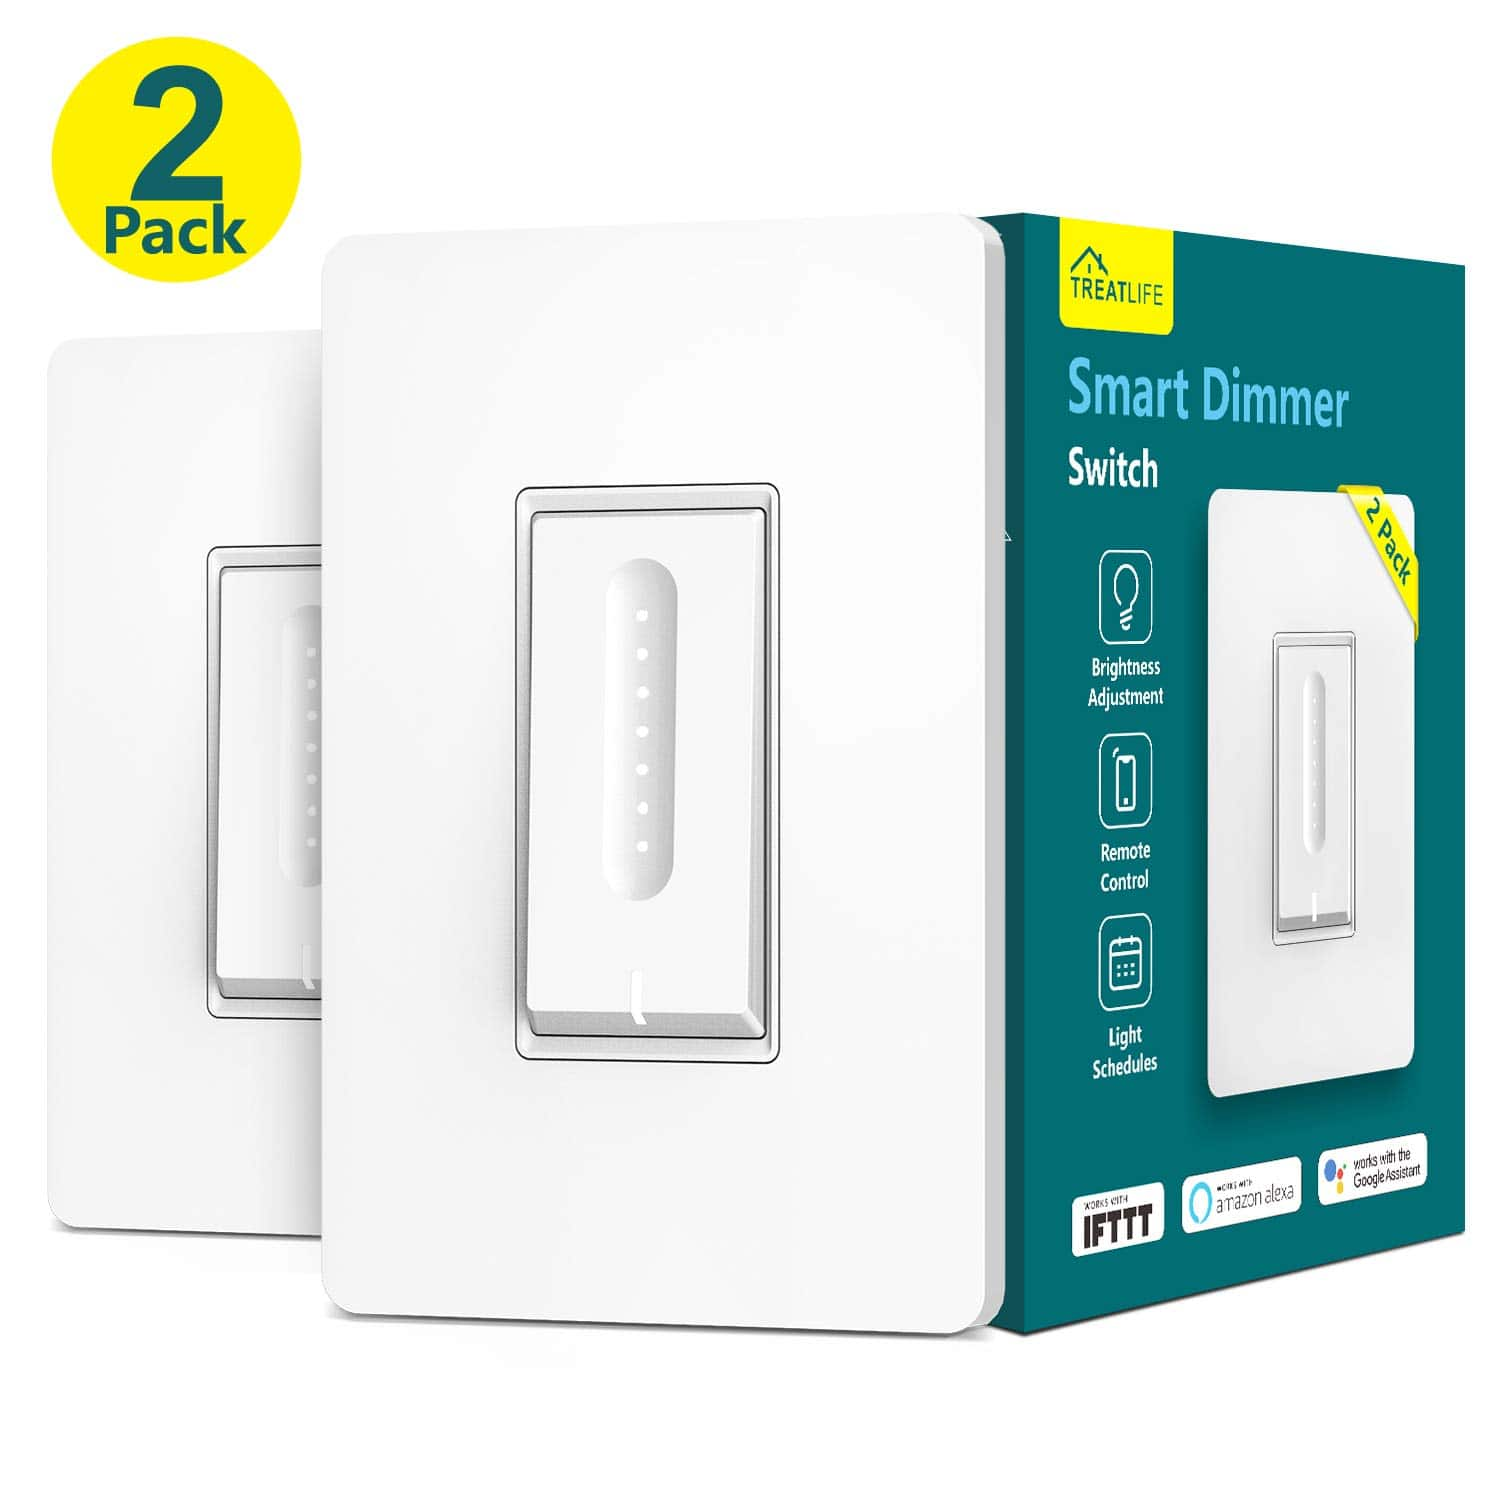 Treatlife Smart WiFi Dimmer Light Switches: 4-Pack $60, 2